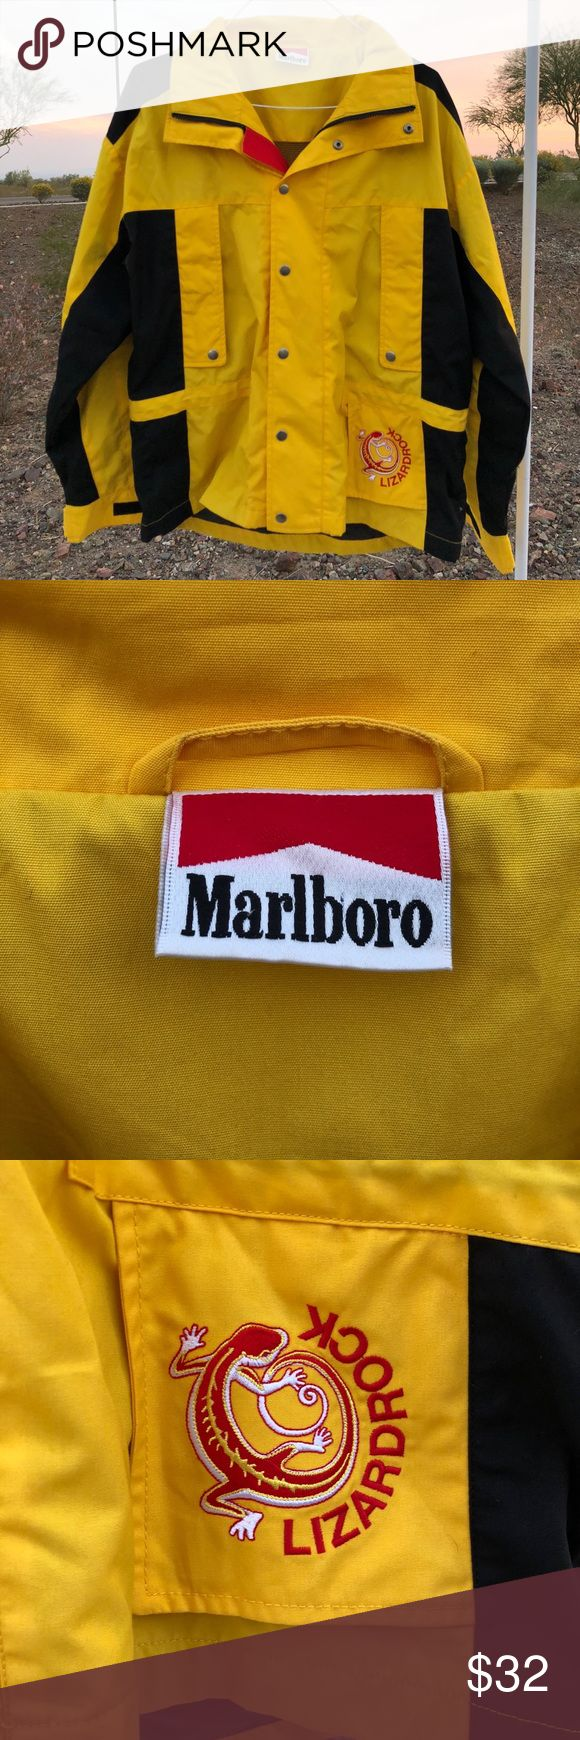 Vintage Marlboro Lizardrock Yellow Jacket Large Vintage Marlboro Lizardrock Yellow Jacket size Large 🚧  Pre Owned 9/10 Condition no stains or holes!  No Returns   Only Shipping to the USA 🇺🇸  Comment for offers or more info about this item 😁  Will bundle! Just message me if you would like more than 1 item!   #Marlboro #Lizardrock #Jacket #Vintage #yellow #rare #black #swag #striped #rain #coat #Large marlboro Jackets & Coats Lightweight & Shirt Jackets